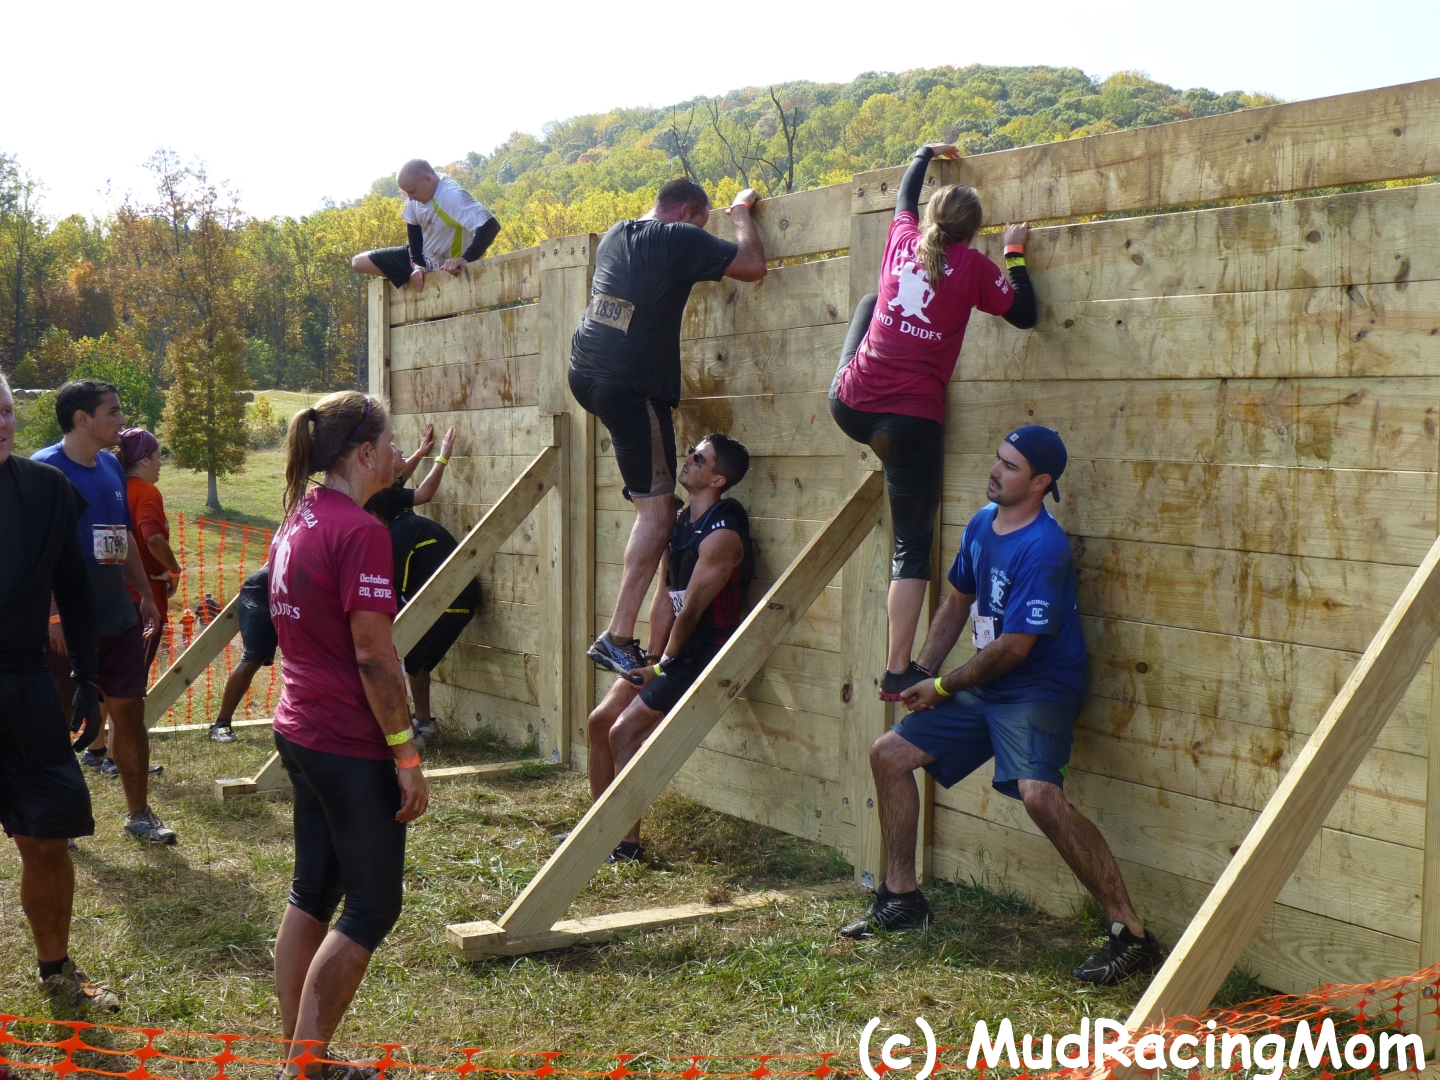 Setting up an obstacle course for adults